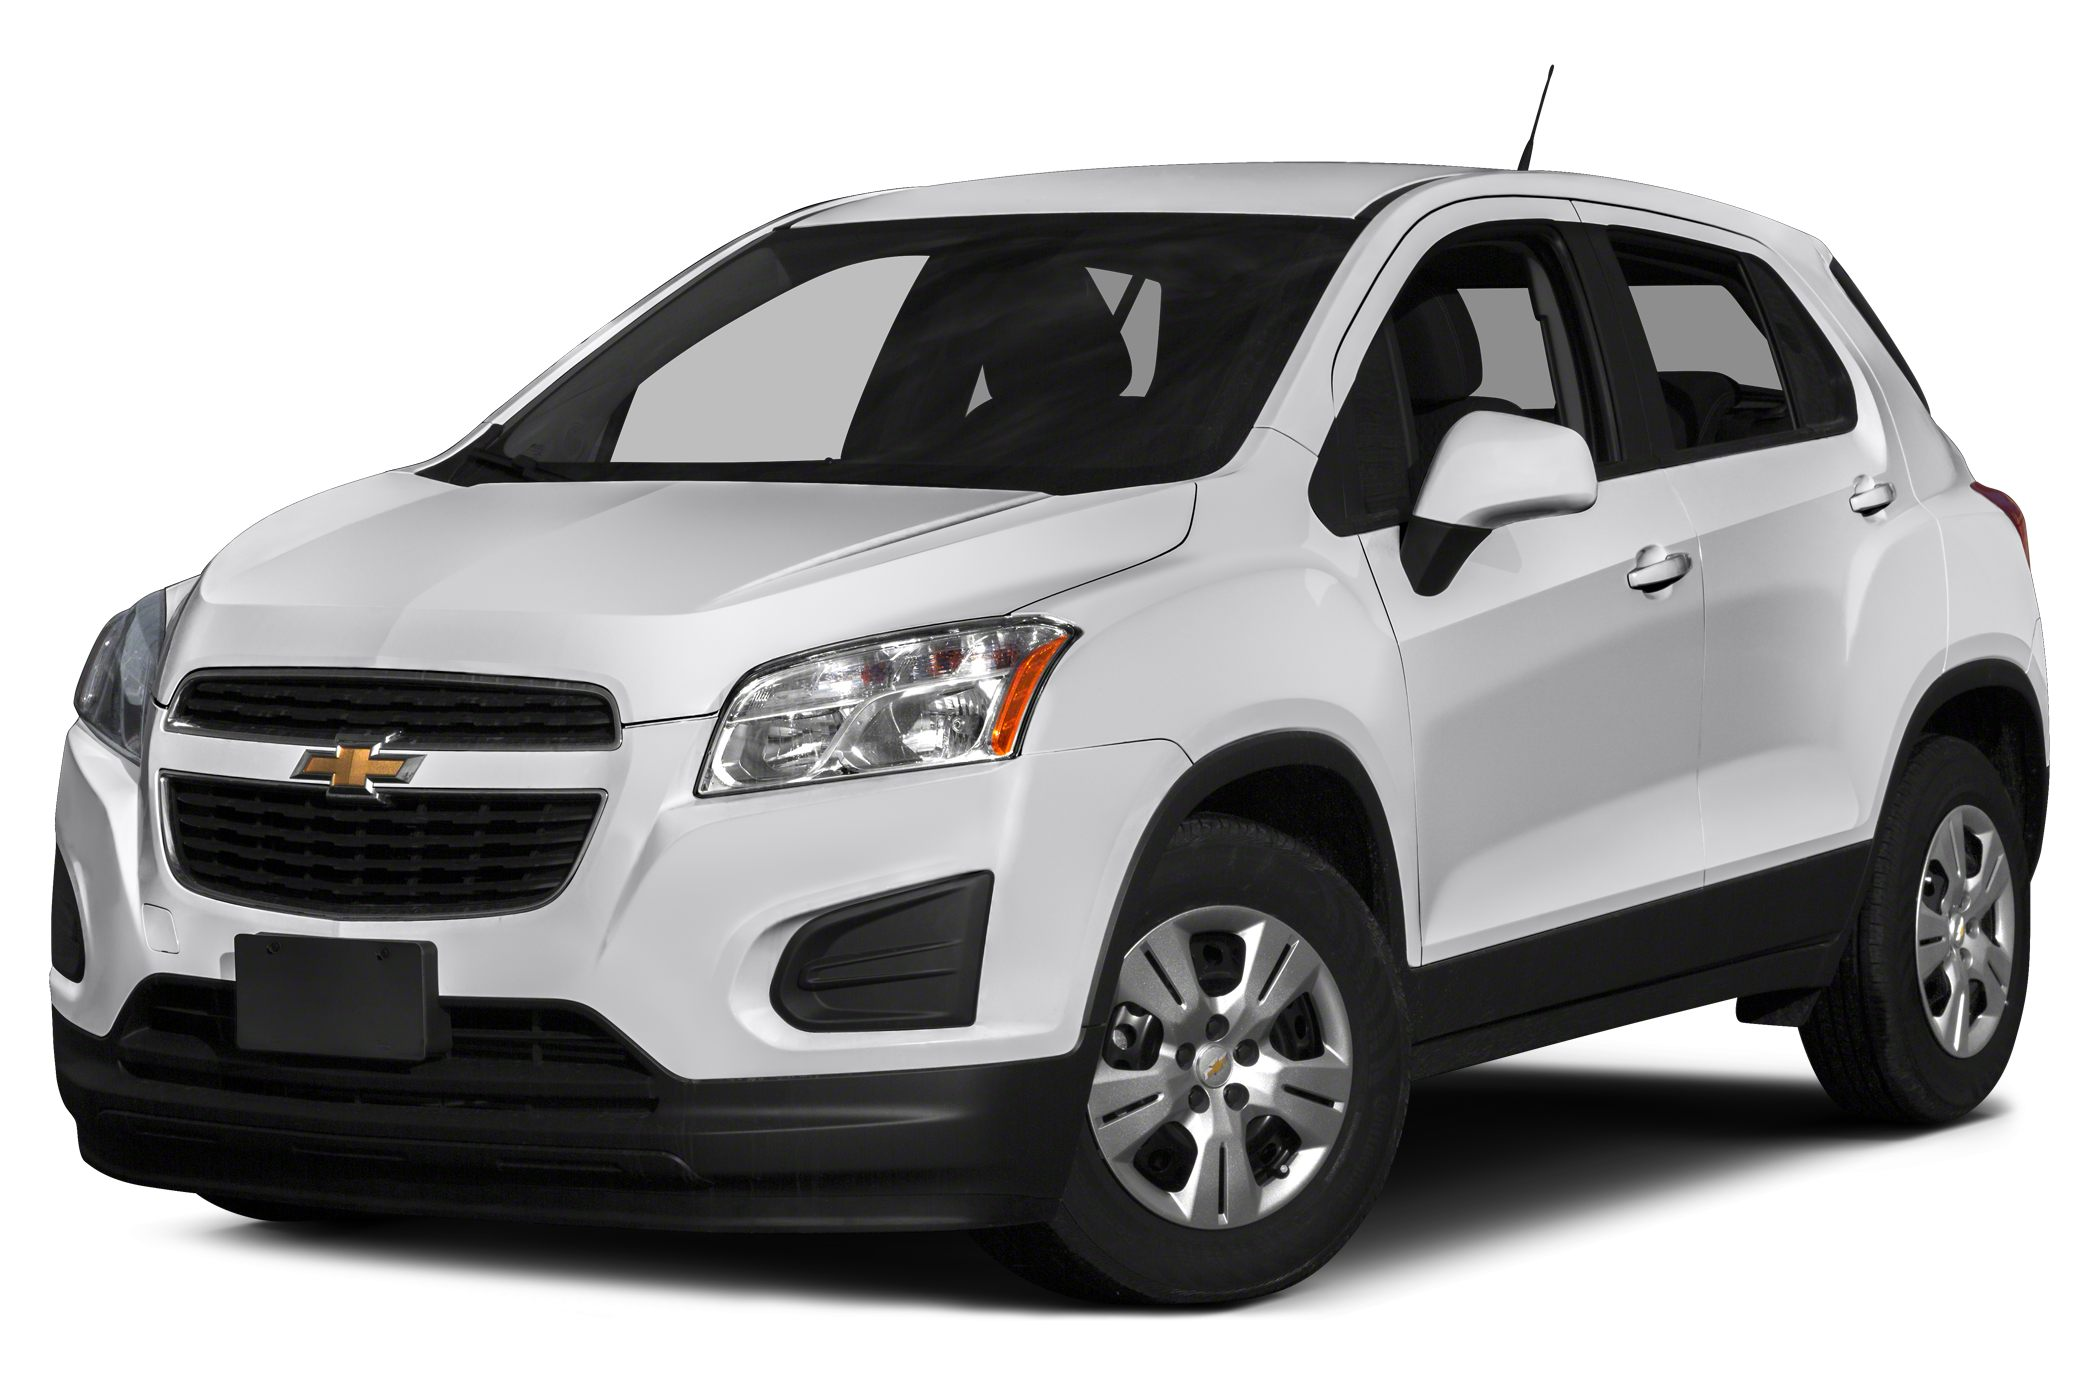 2015 Chevrolet Trax LT SUV for sale in Littleton for $24,787 with 5 miles.